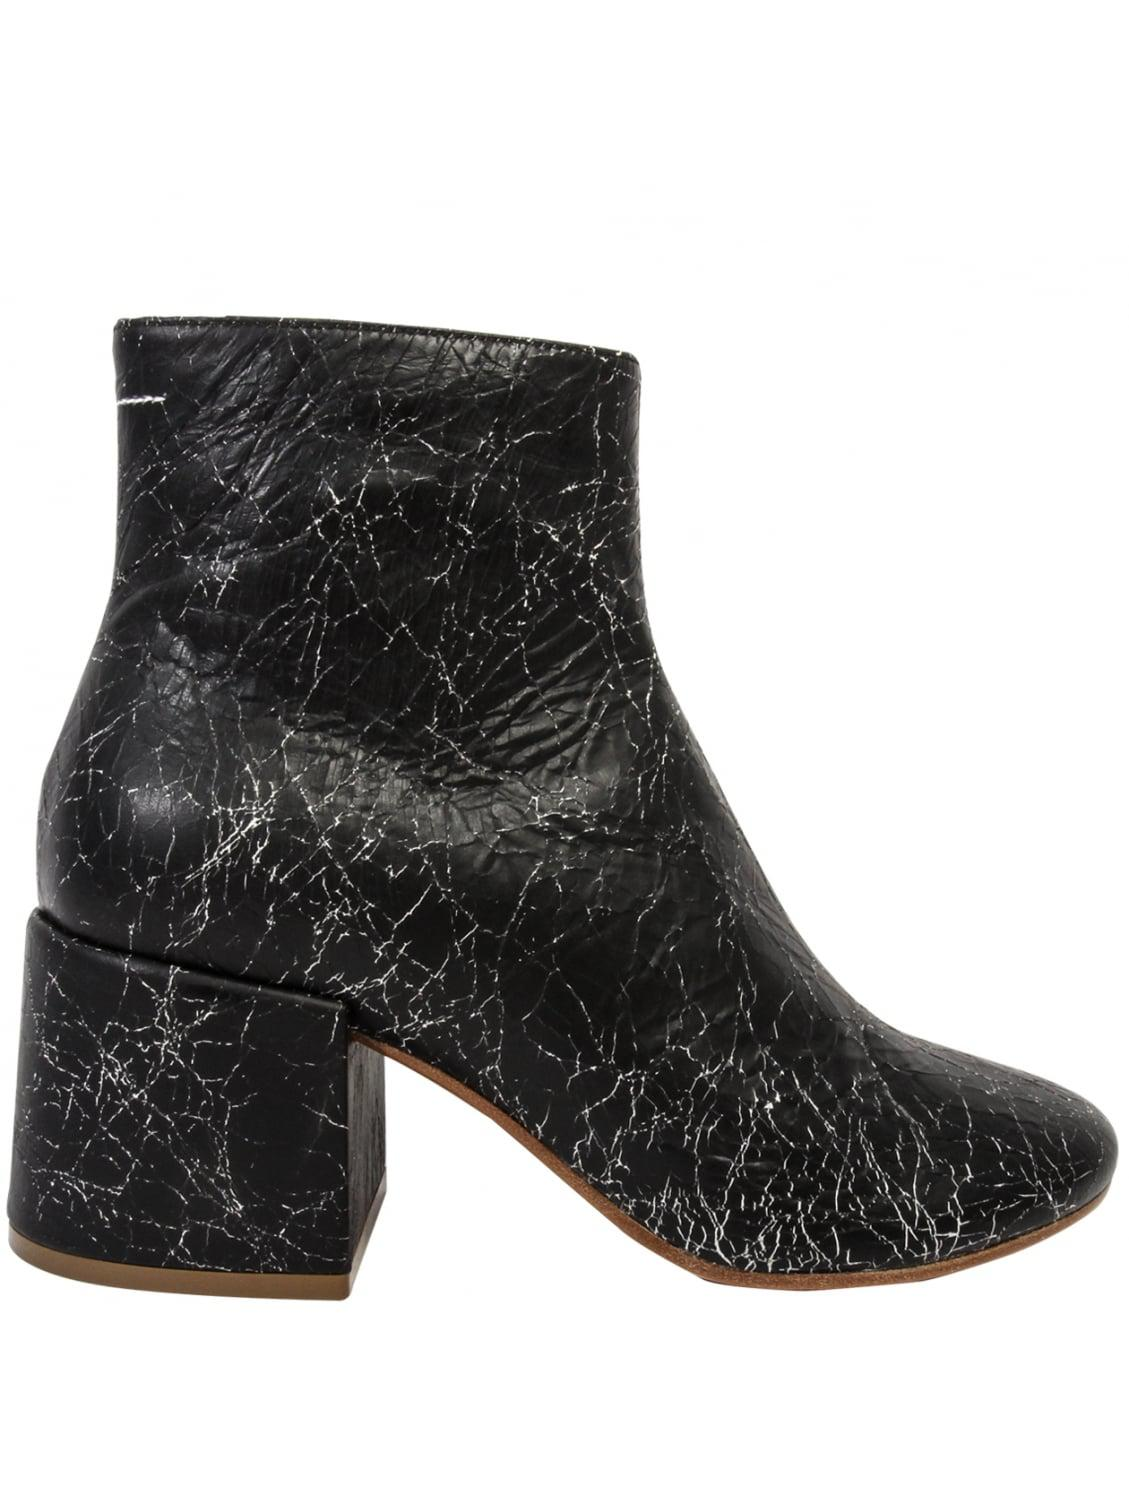 block heel ankle boots - Black Maison Martin Margiela Wholesale Price Cheap Price WaPQUXbL